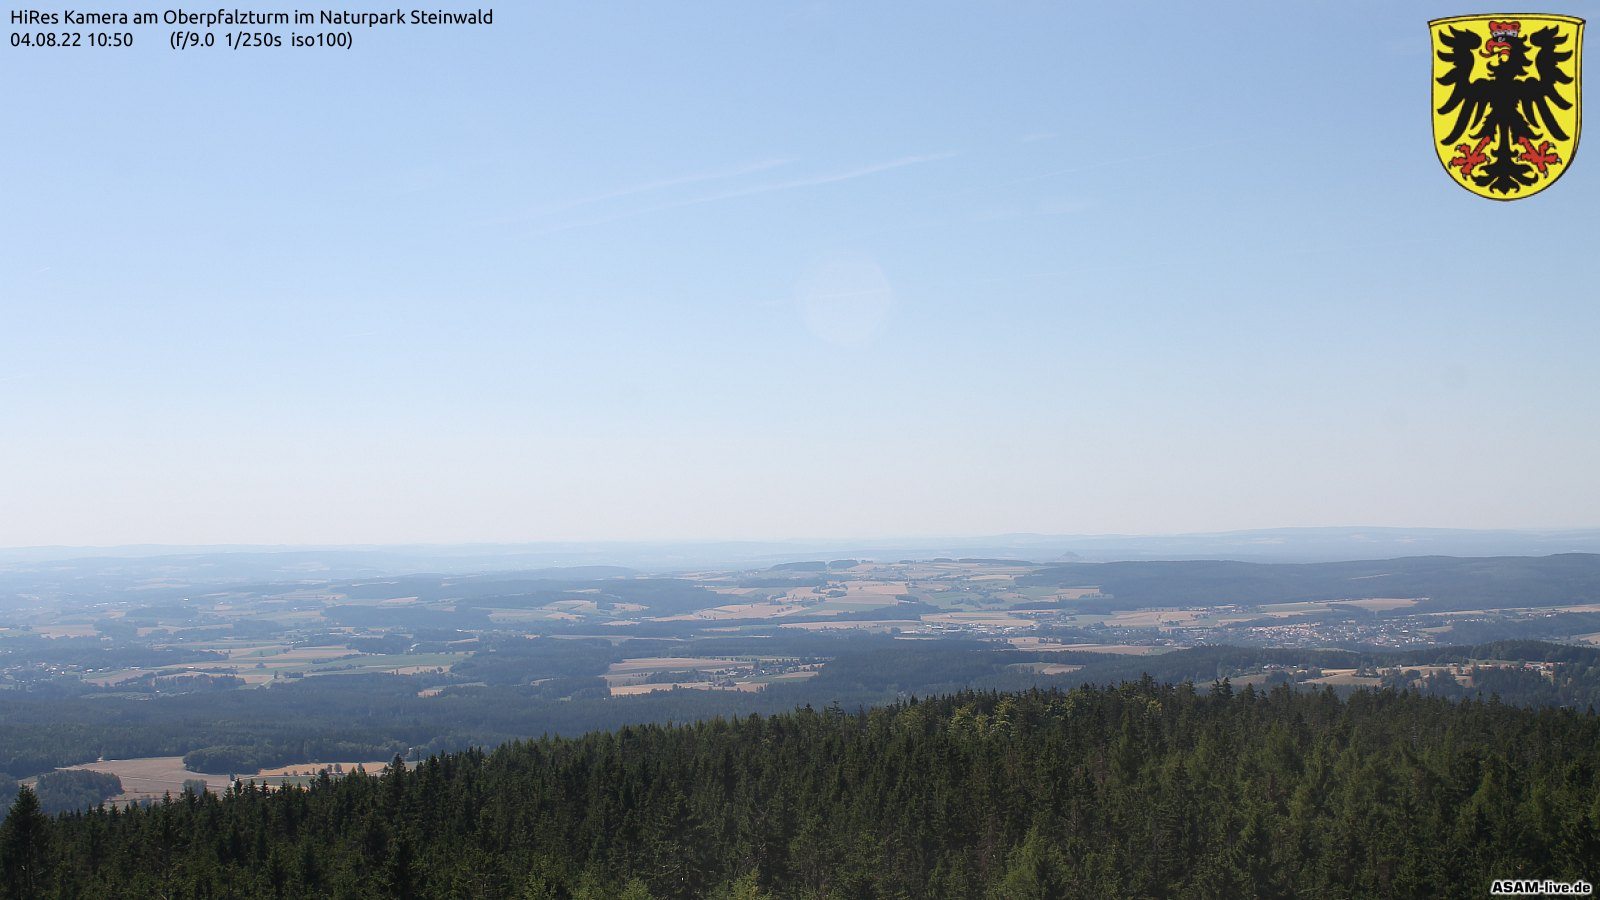 Webcam Oberpfalzturm